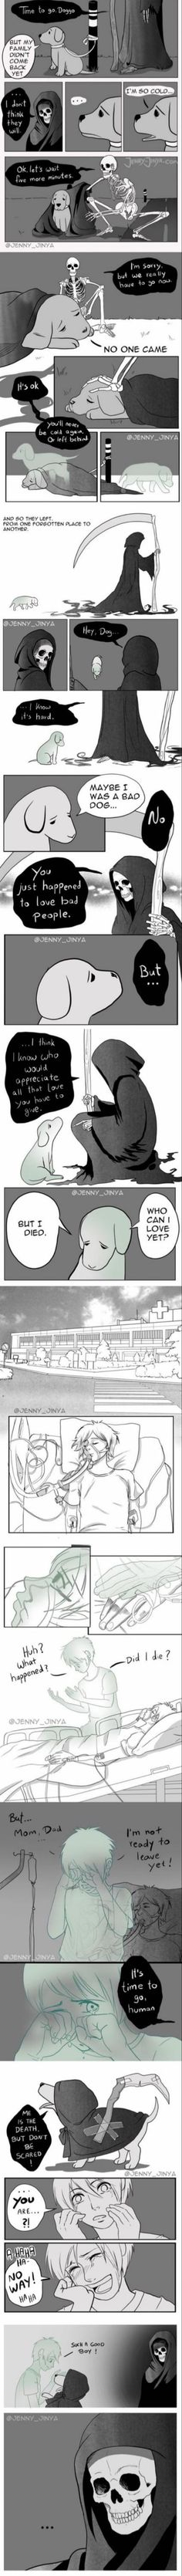 After life doggo Please consider not being an asshole and actuall. - After life doggo Please consider not being an asshole and actually take care of the p - Sweet Stories, Cute Stories, Comics Story, Faith In Humanity Restored, Short Comics, After Life, 9gag Funny, Memes Humor, Funny Comics